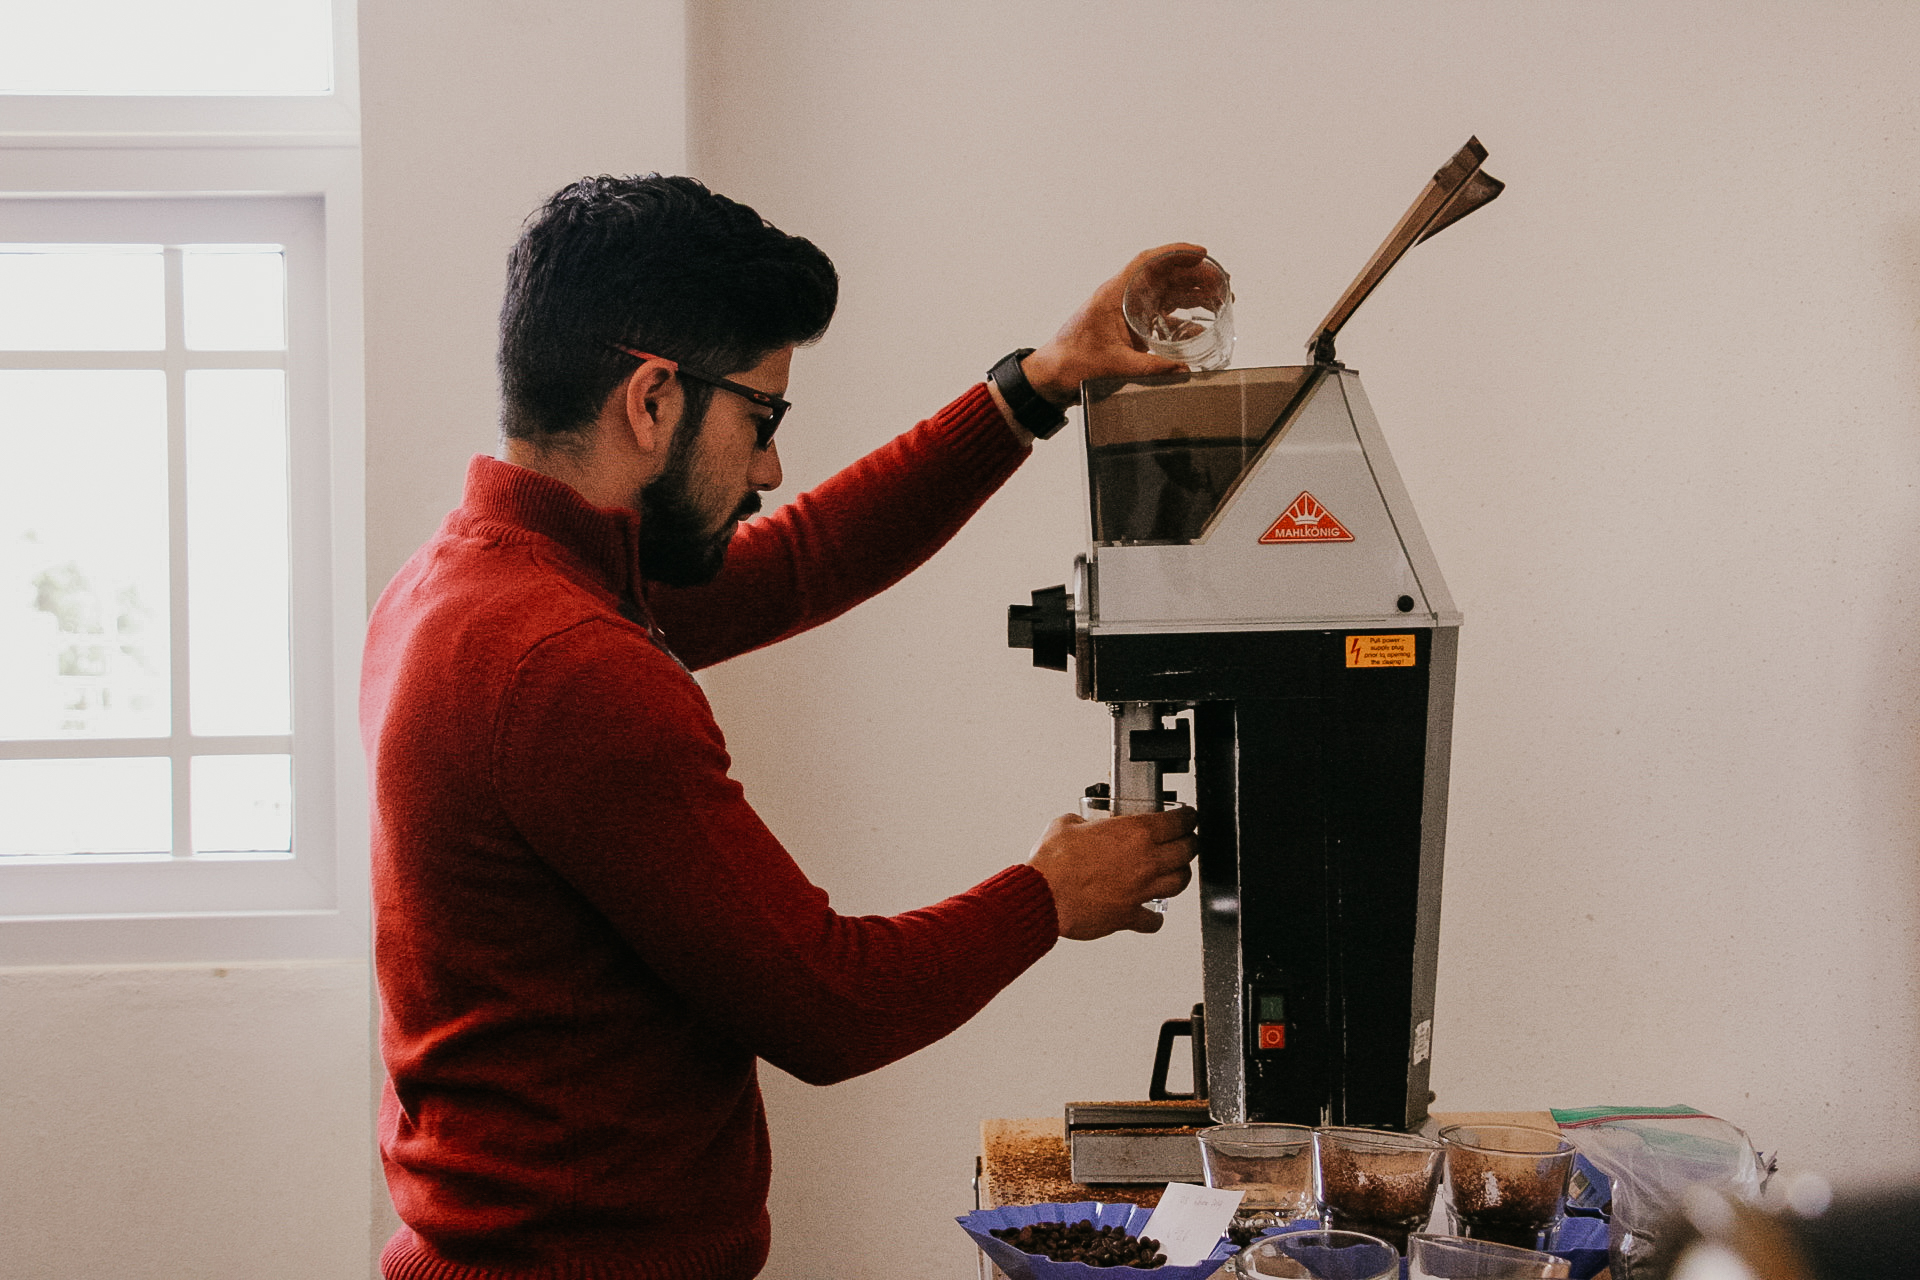 Rodin grinding coffee for our cupping